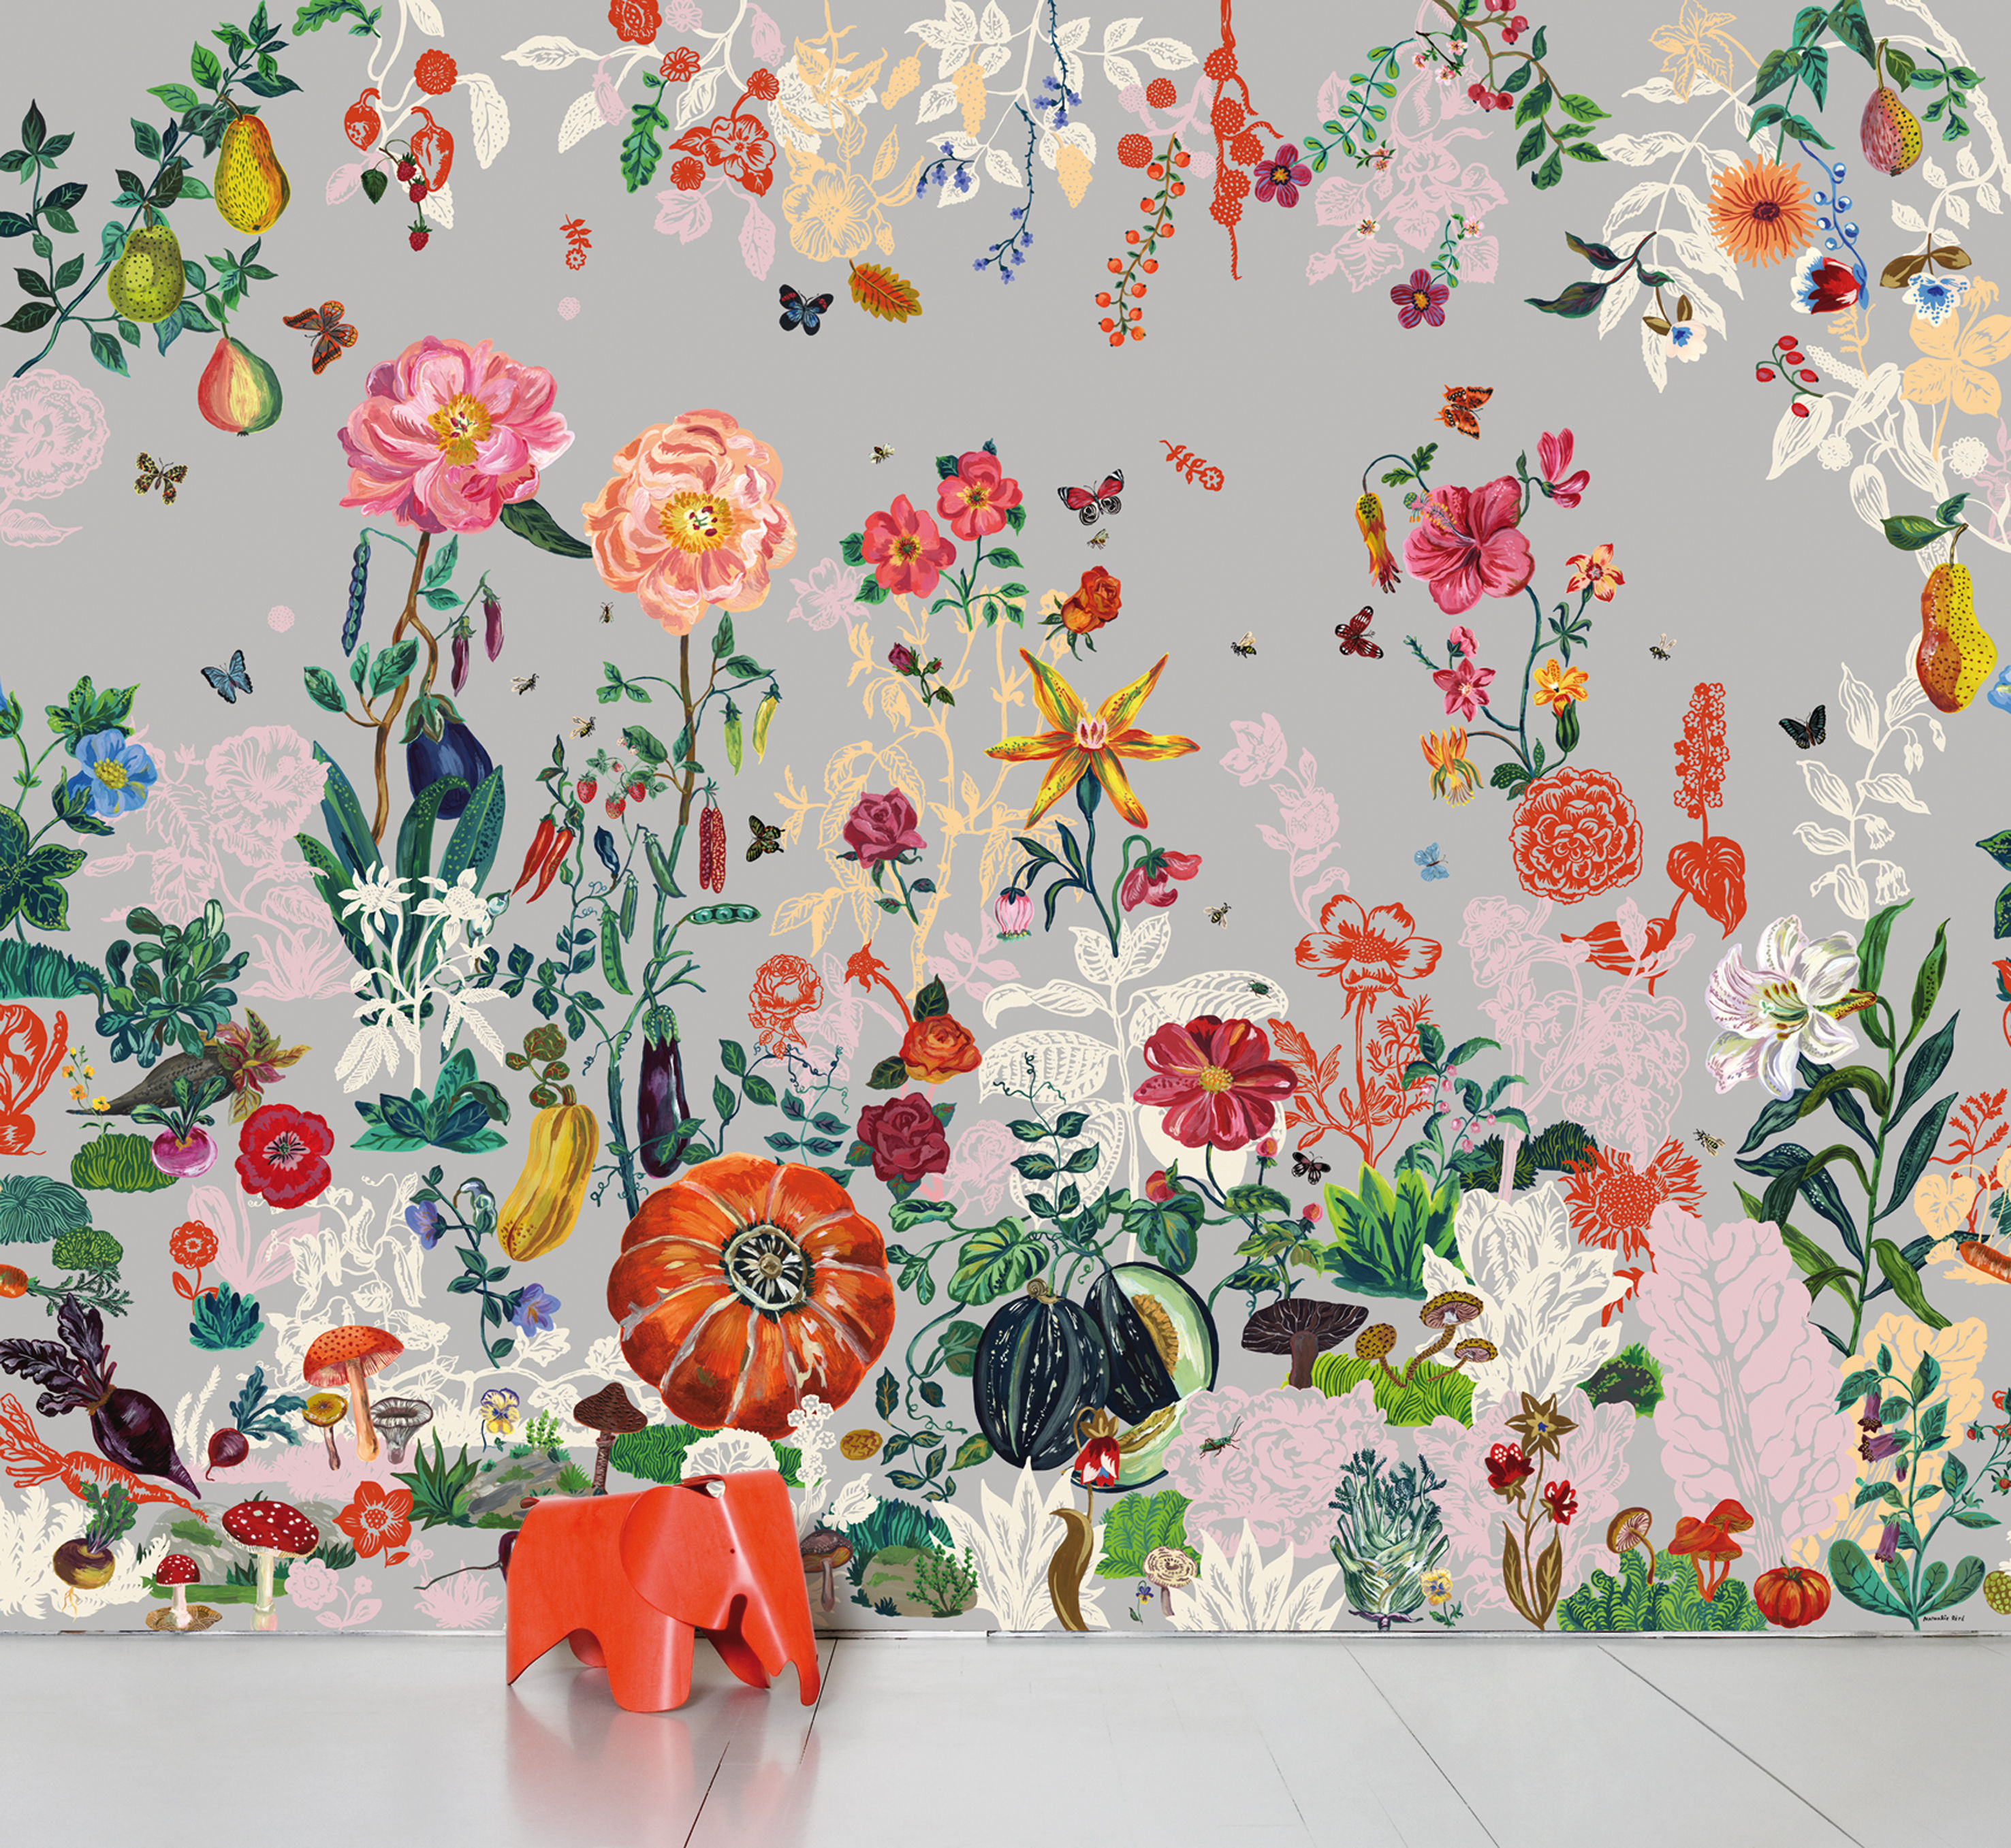 Decoration - Wallpaper & Wall Stickers - Jardin Wallpaper - Panoramic wallpaper by Domestic - Grey garden - Intisse paper